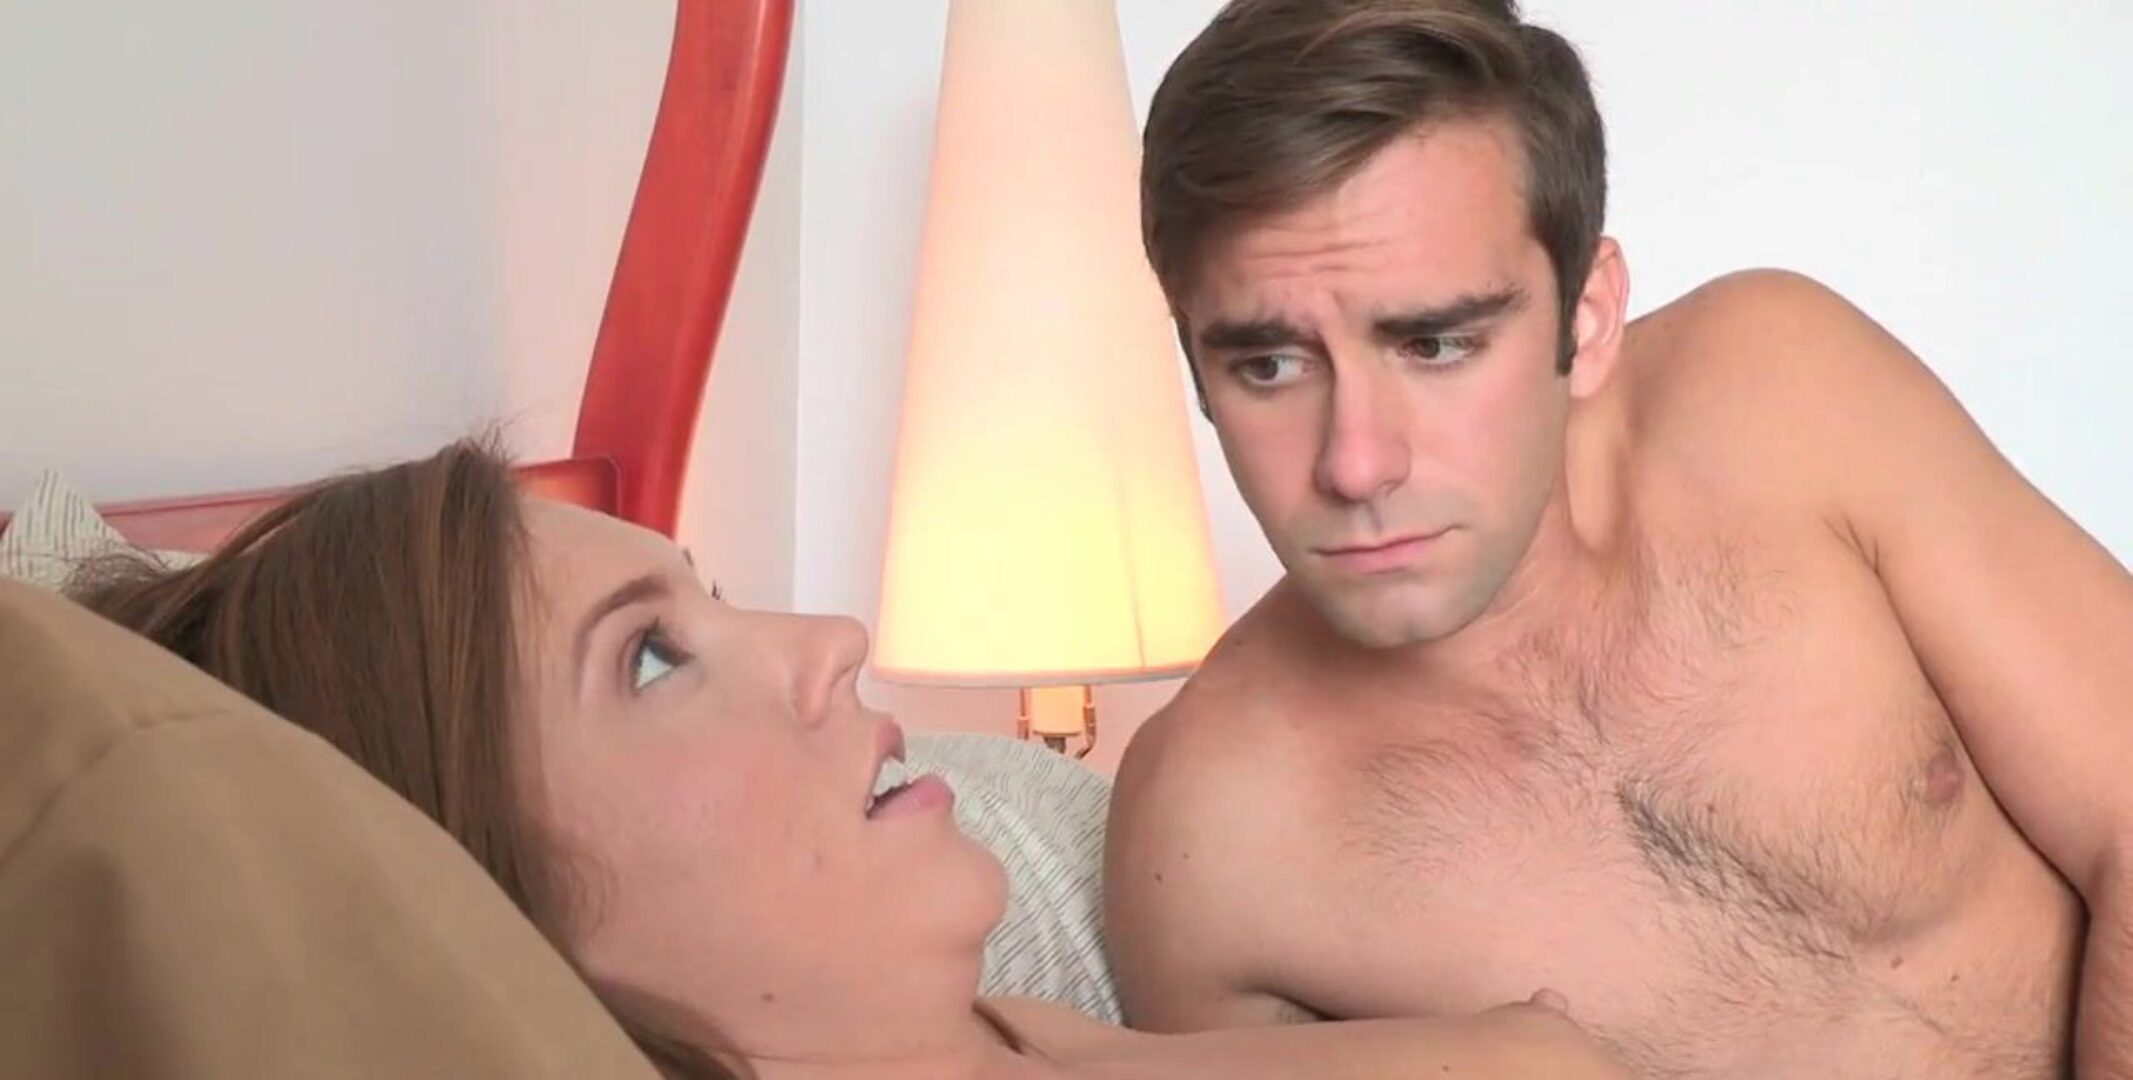 Moms Bang Teens - Milf teaches couple